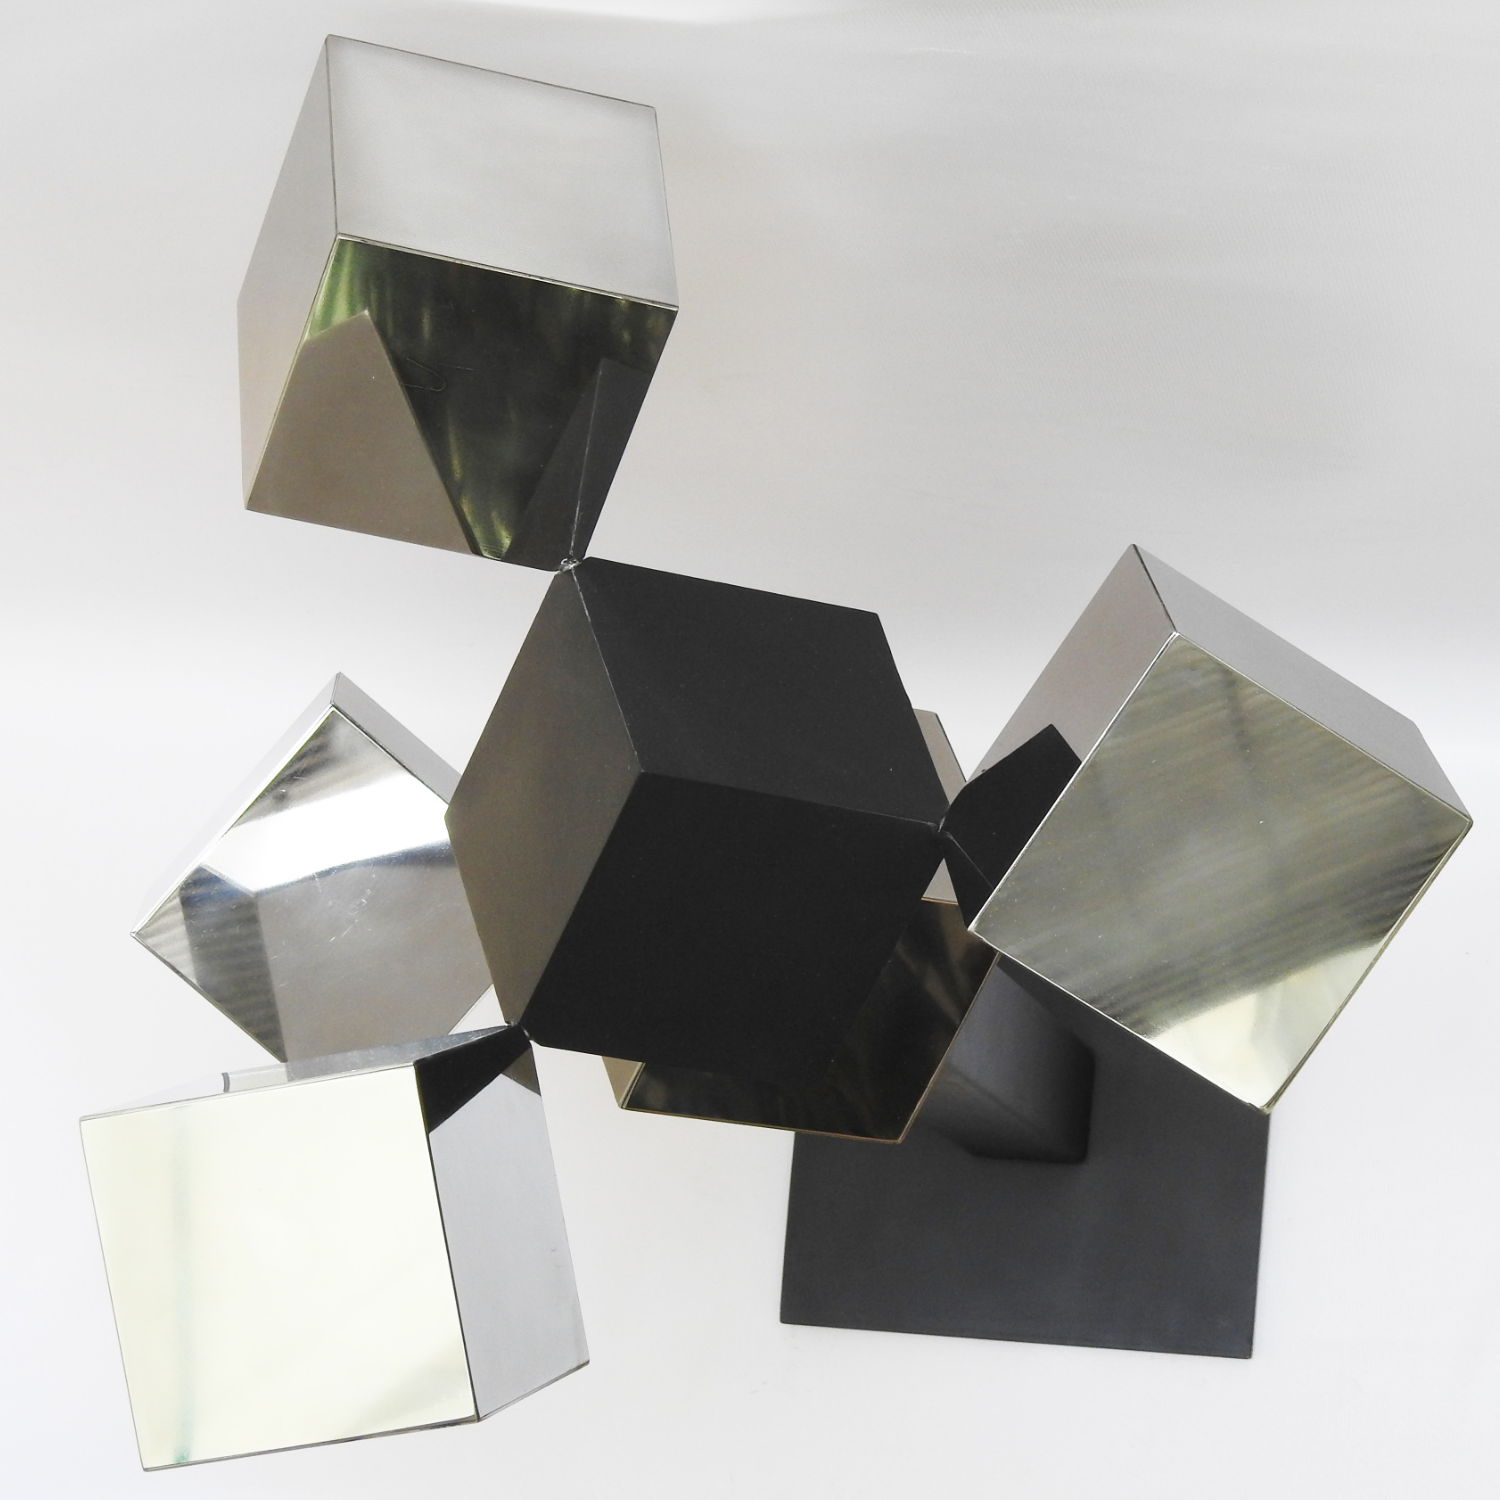 A photo of a cubic metal sculpture